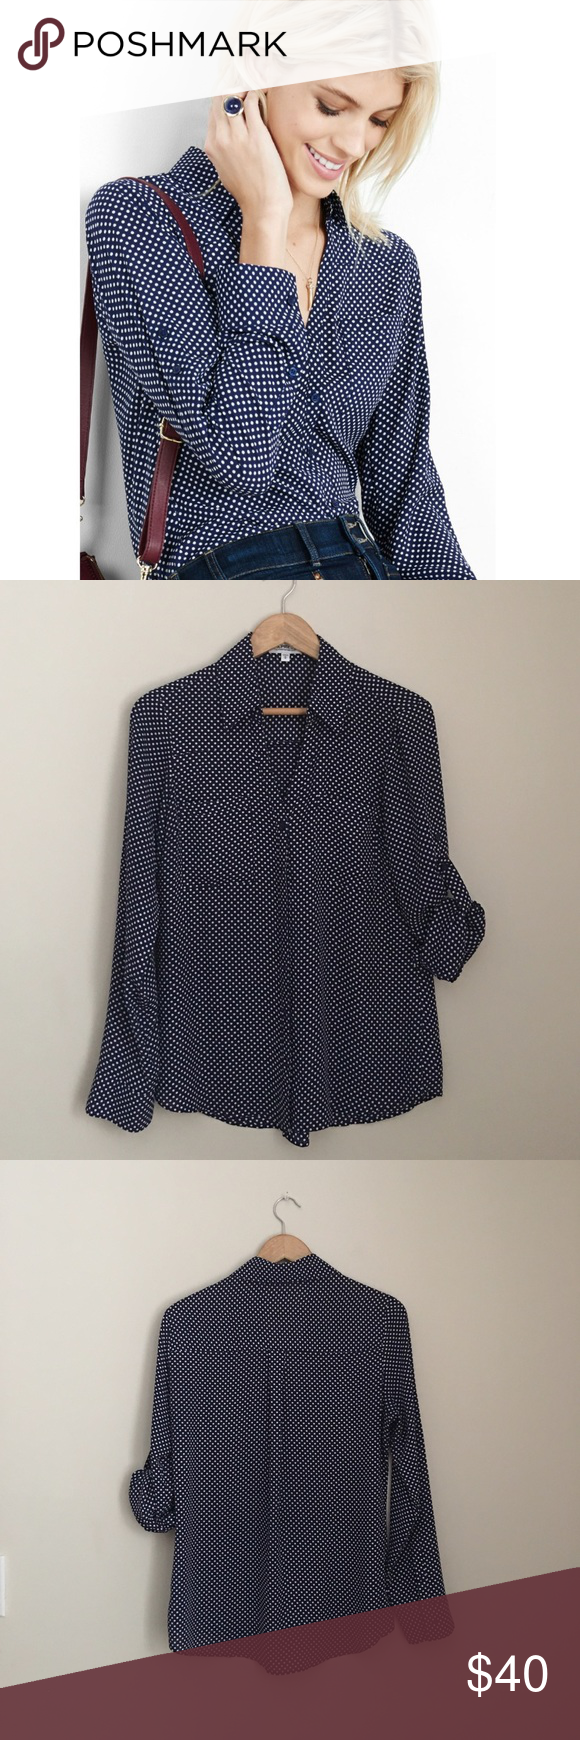 NWOT Express Portofino Navy Polkadot Shirt This navy polkadot shirt by Express lends a little classic style to office ensembles and elegance to casual looks. The Portofino is a merger of classic shirt confidence and effortlessly sexy style in luxe semi-sheer crepe. Original fit Point collar, notch neckline, button front Long convertible sleeves, roll tabs, buttoned  Polyester Size Medium NWOT Express Tops Blouses